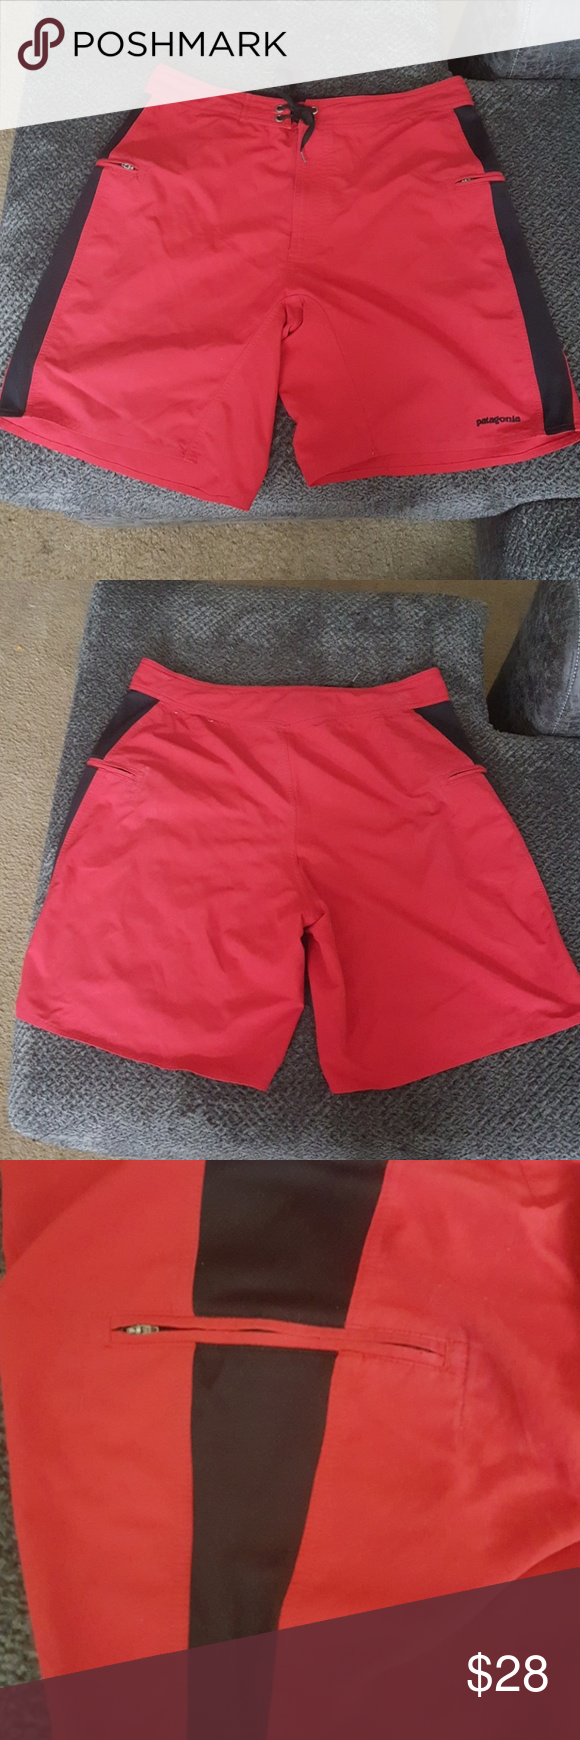 """Men's Patagonia Swim Trunks Swimming trunks with zipper pockets Size 38/ Drawstring waist 52% Polyester and 48% Nylon Measurements laying flat: 18""""waist, 21"""" length and 10"""" inseam Patagonia Swim Swim Trunks"""